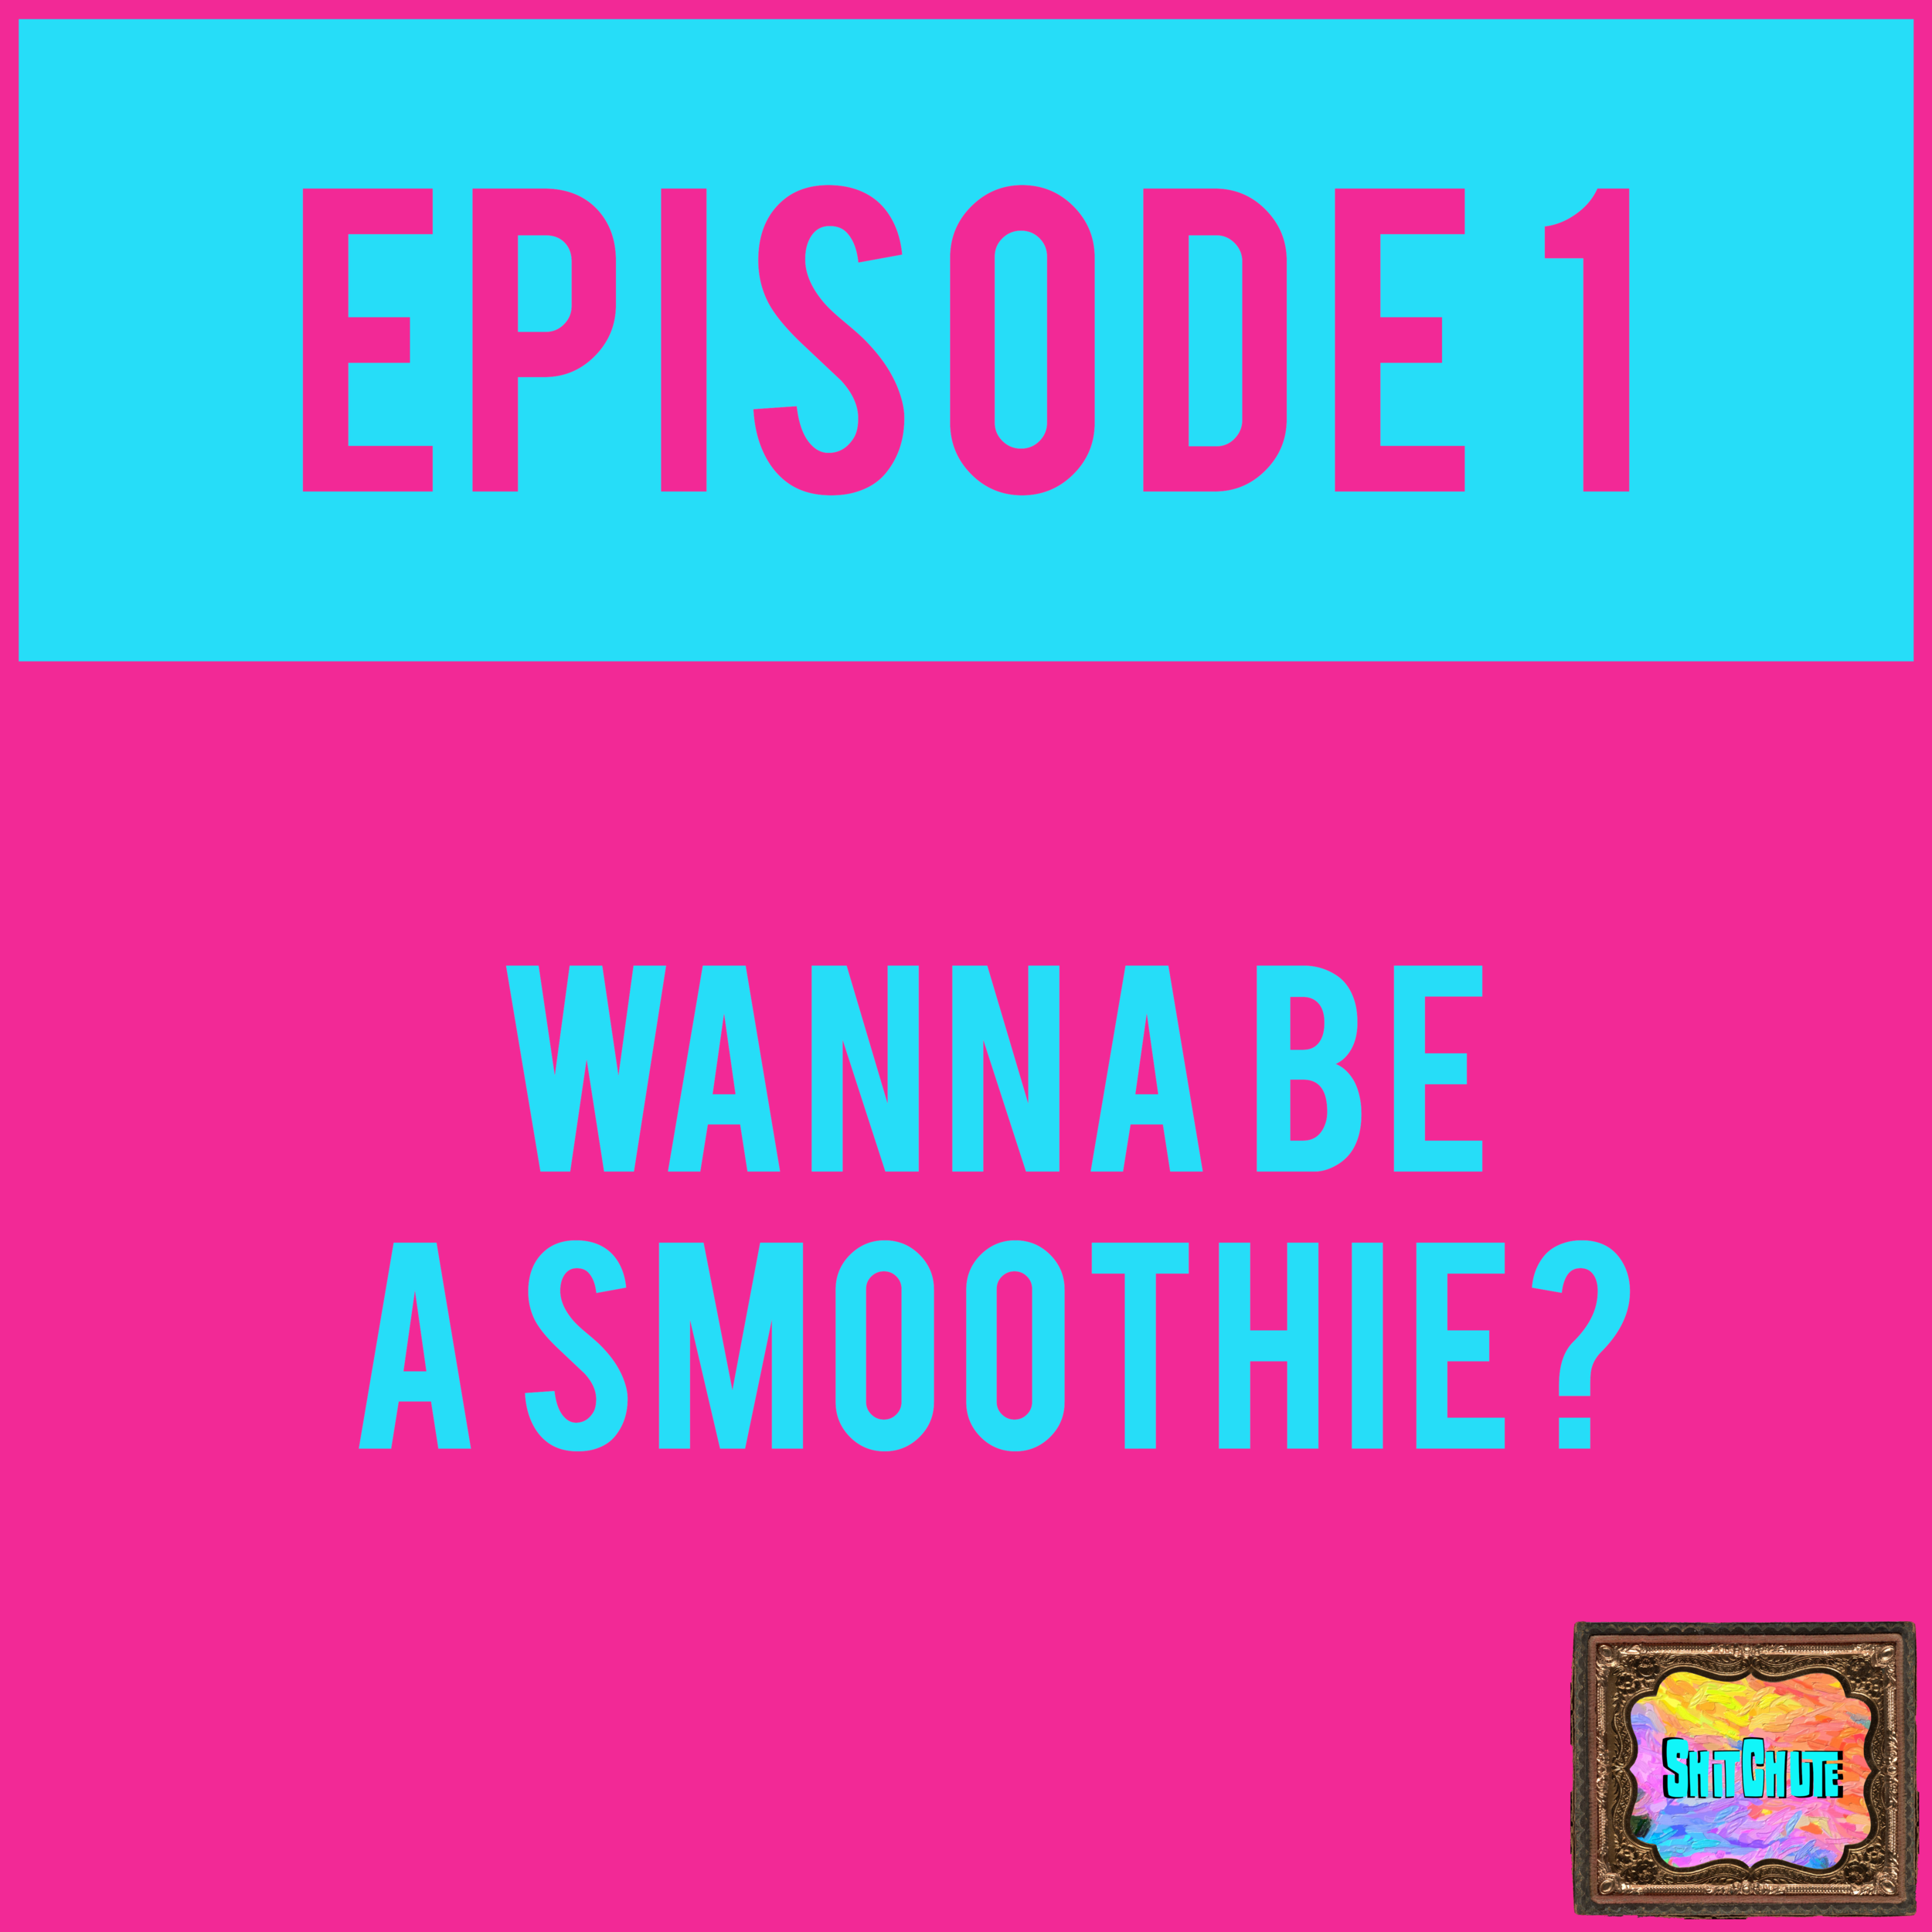 EPISODE 1 - First ShitChute episode: WANNA BE A SMOOTHIE? - EPISODE 1 is out for all the $5 Patrons! Link in bio.